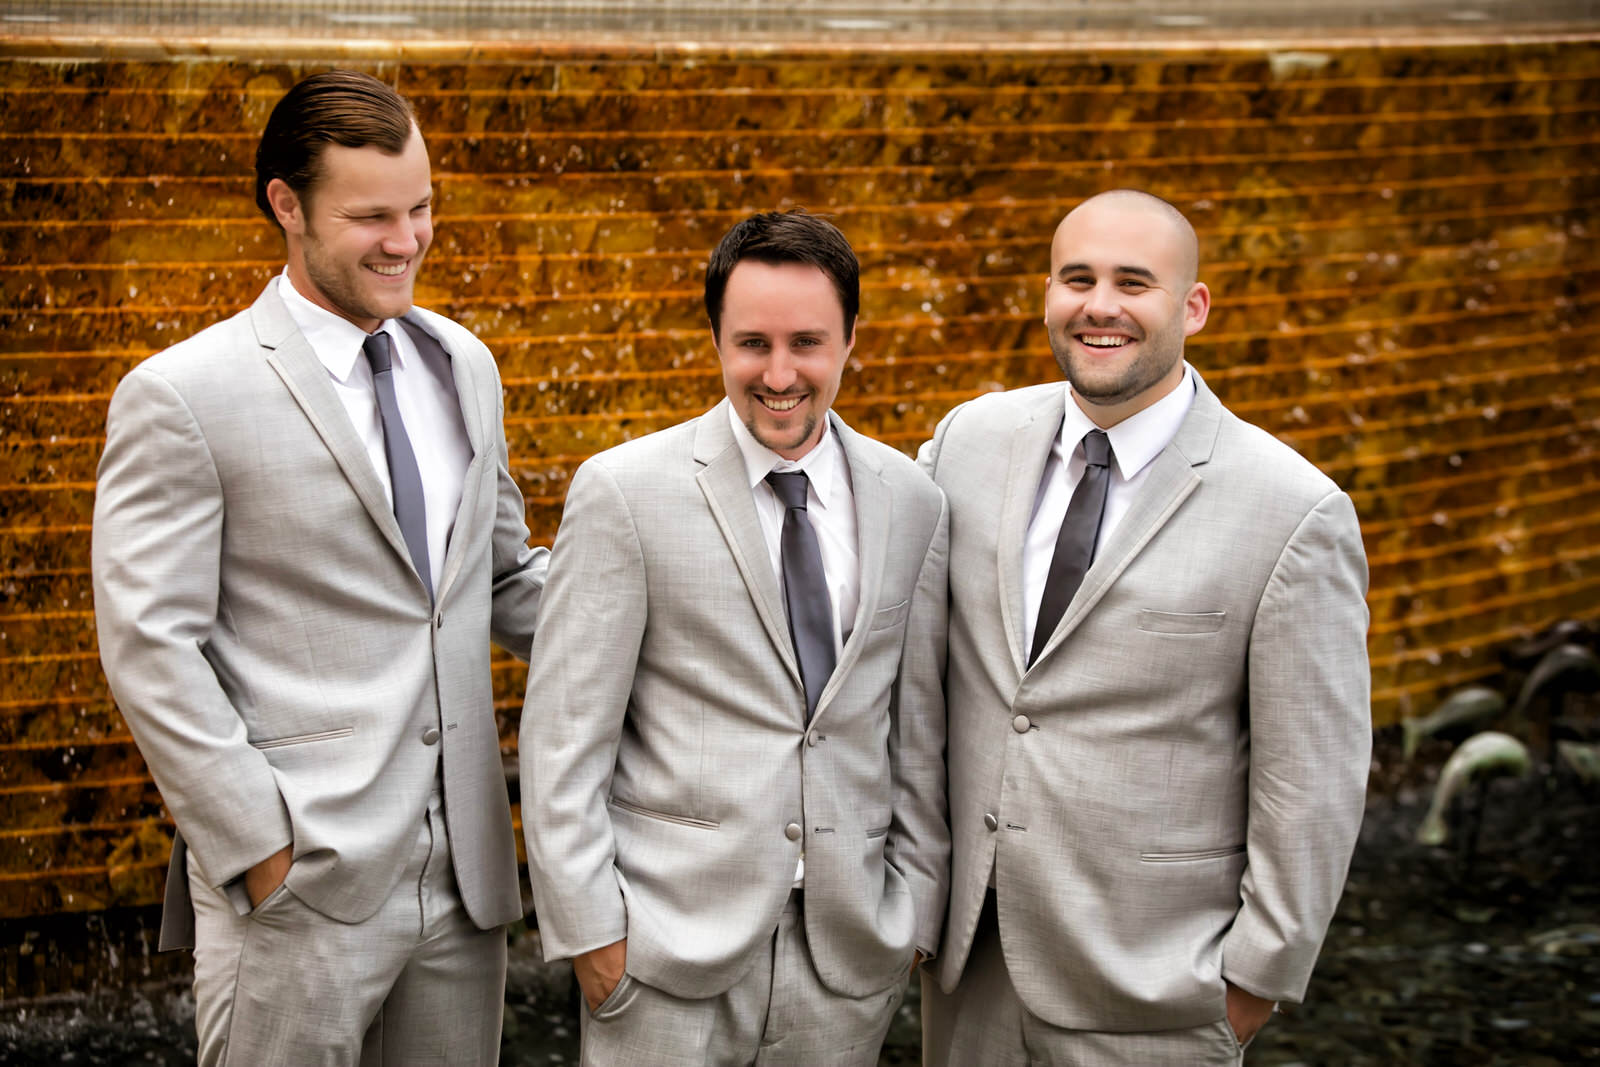 Cheerful Groomsmen